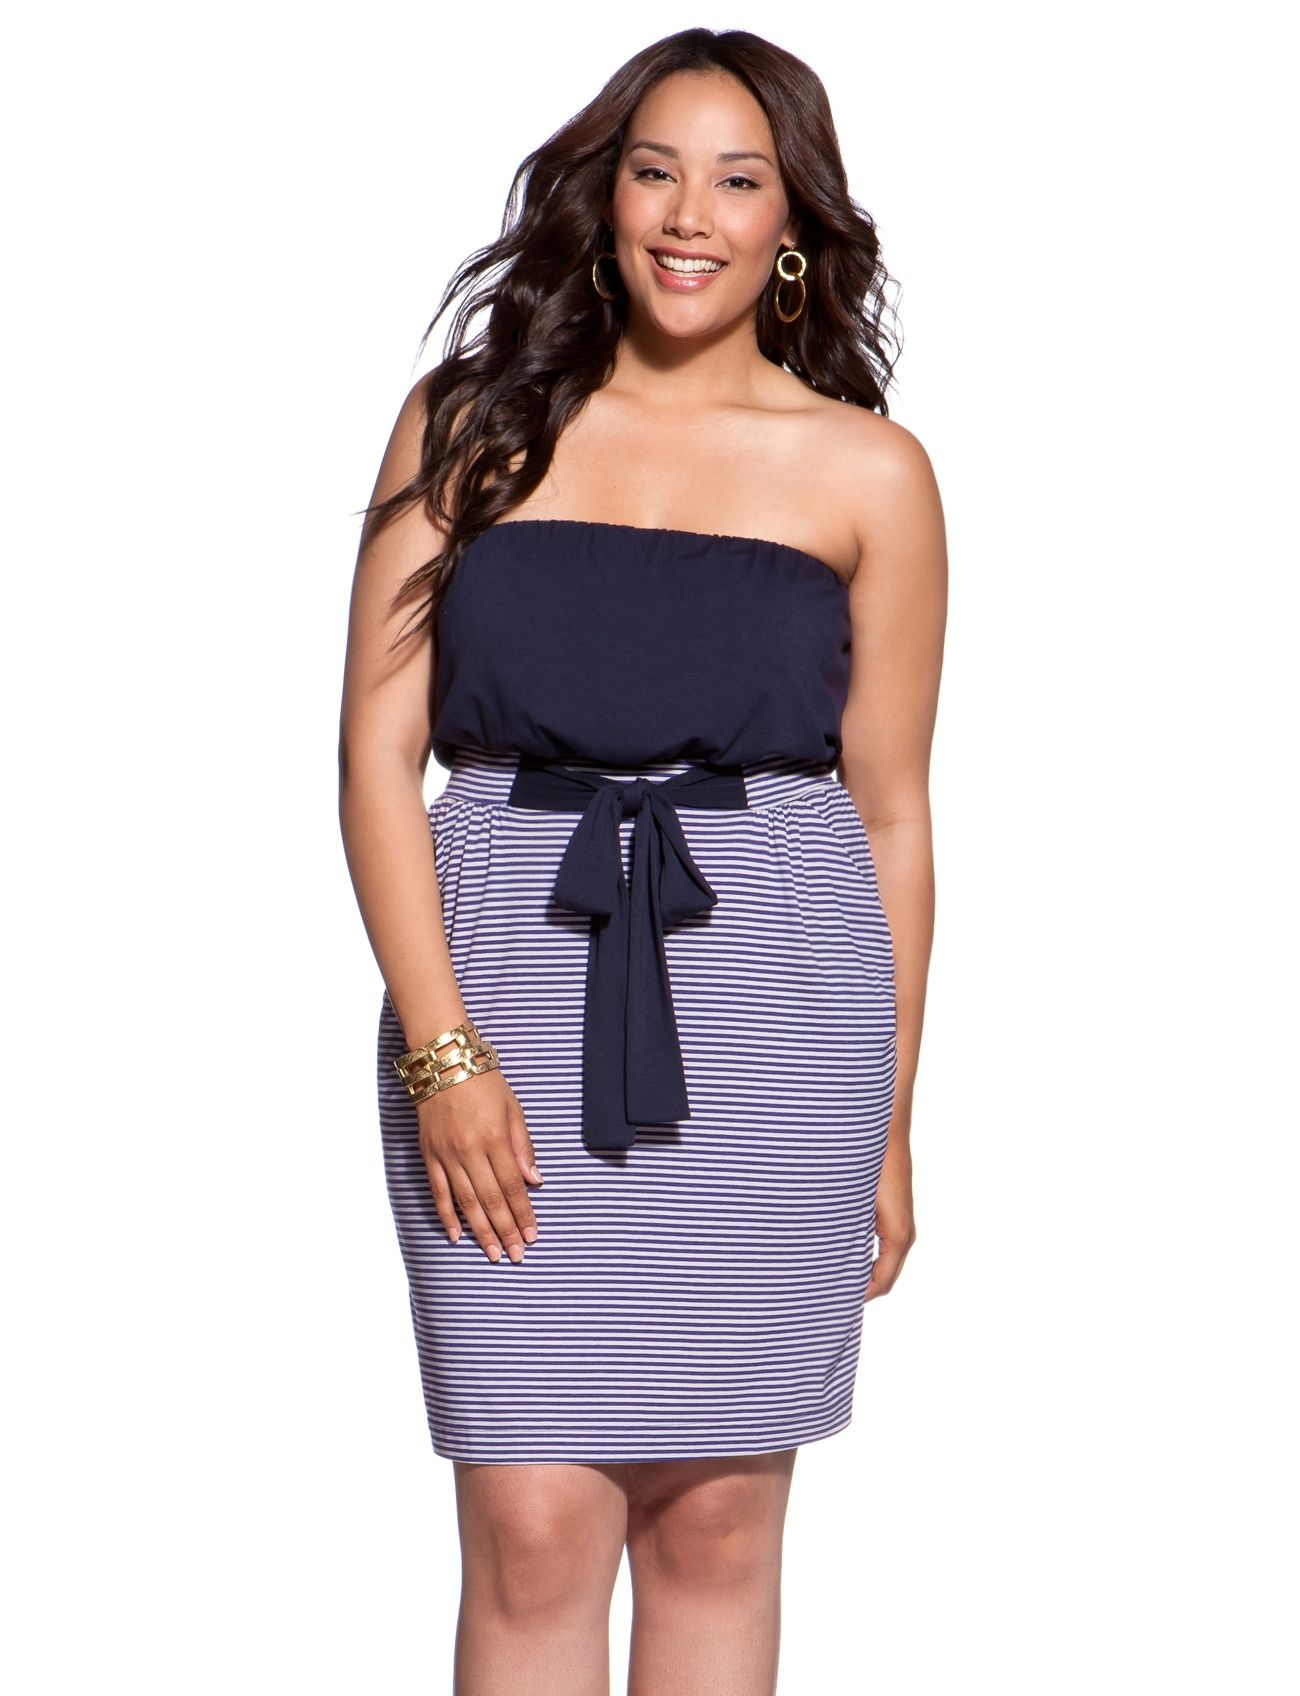 a22cfa59ae3a4e Striped Tube Top Dress - Women s Dresses   Plus Size Dresses - eloquii by  The Limited